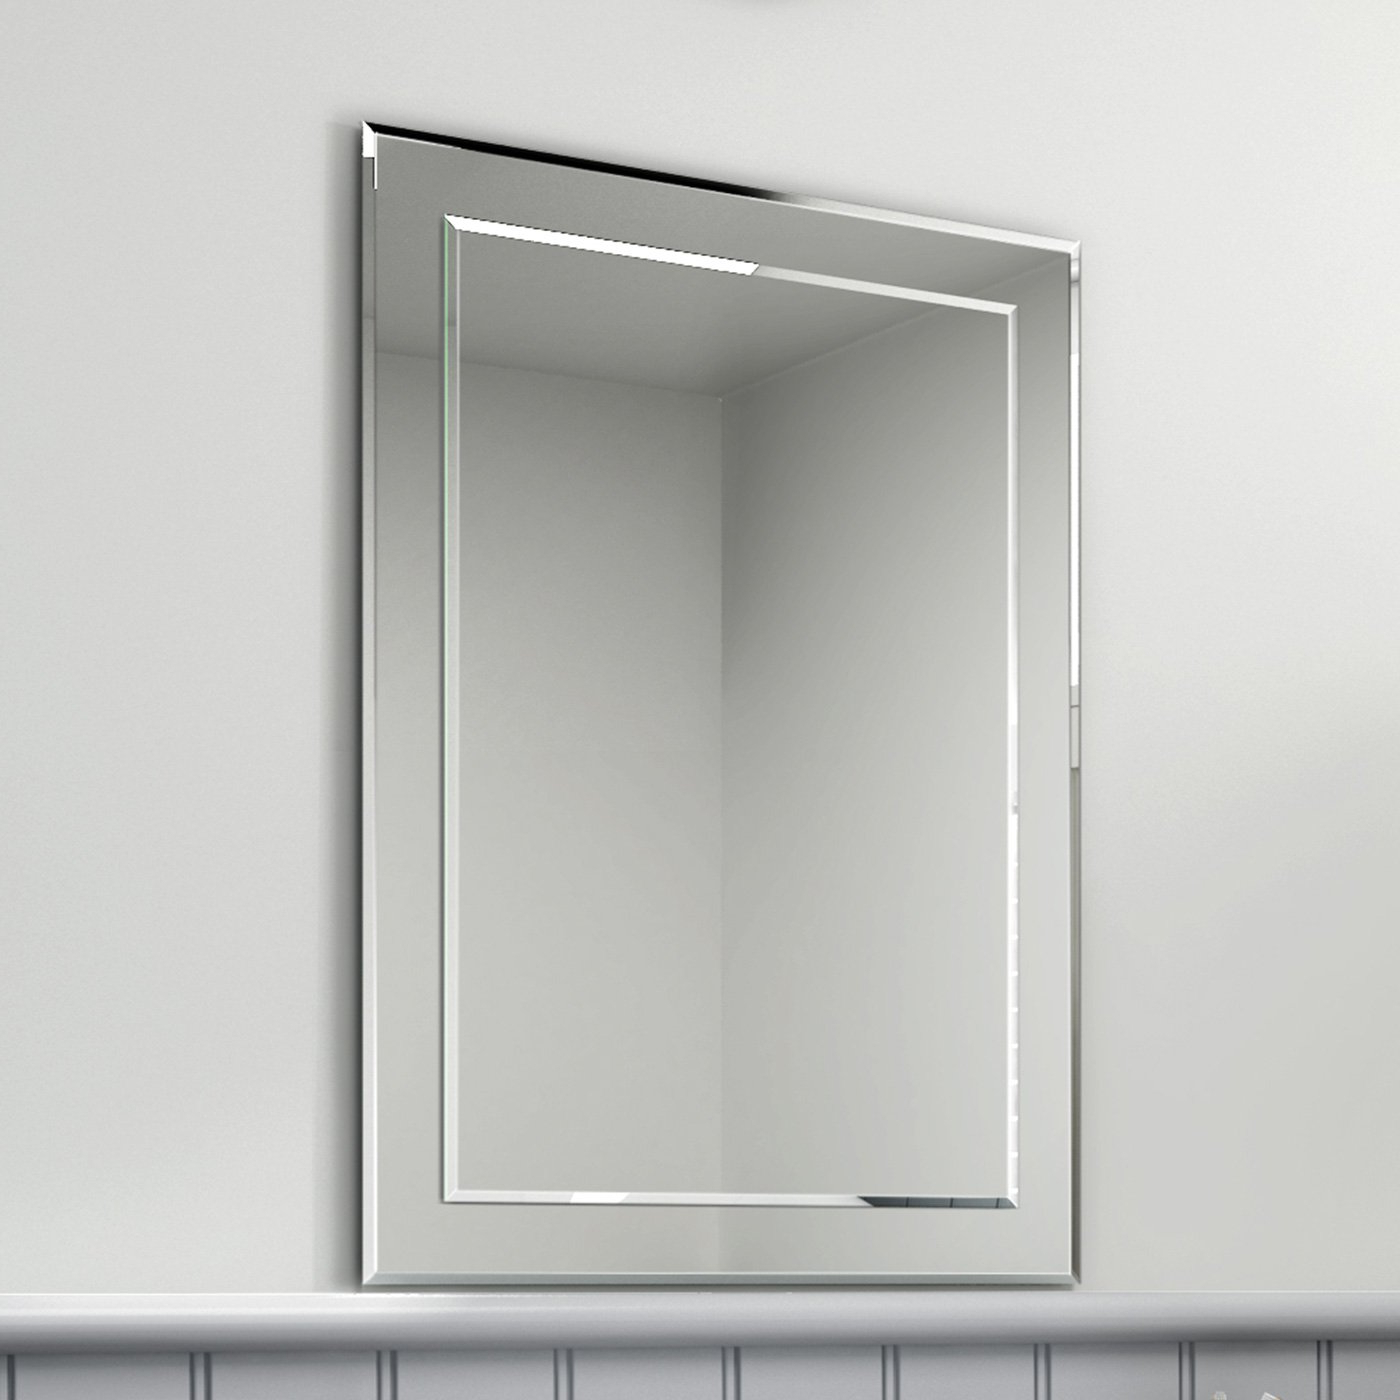 Fashionable 500 X 700 Mm Rectangular Bevelled Designer Bathroom Wall Mirror Bathroom Mirrors Mc148 With Regard To Bevelled Wall Mirrors (View 5 of 20)